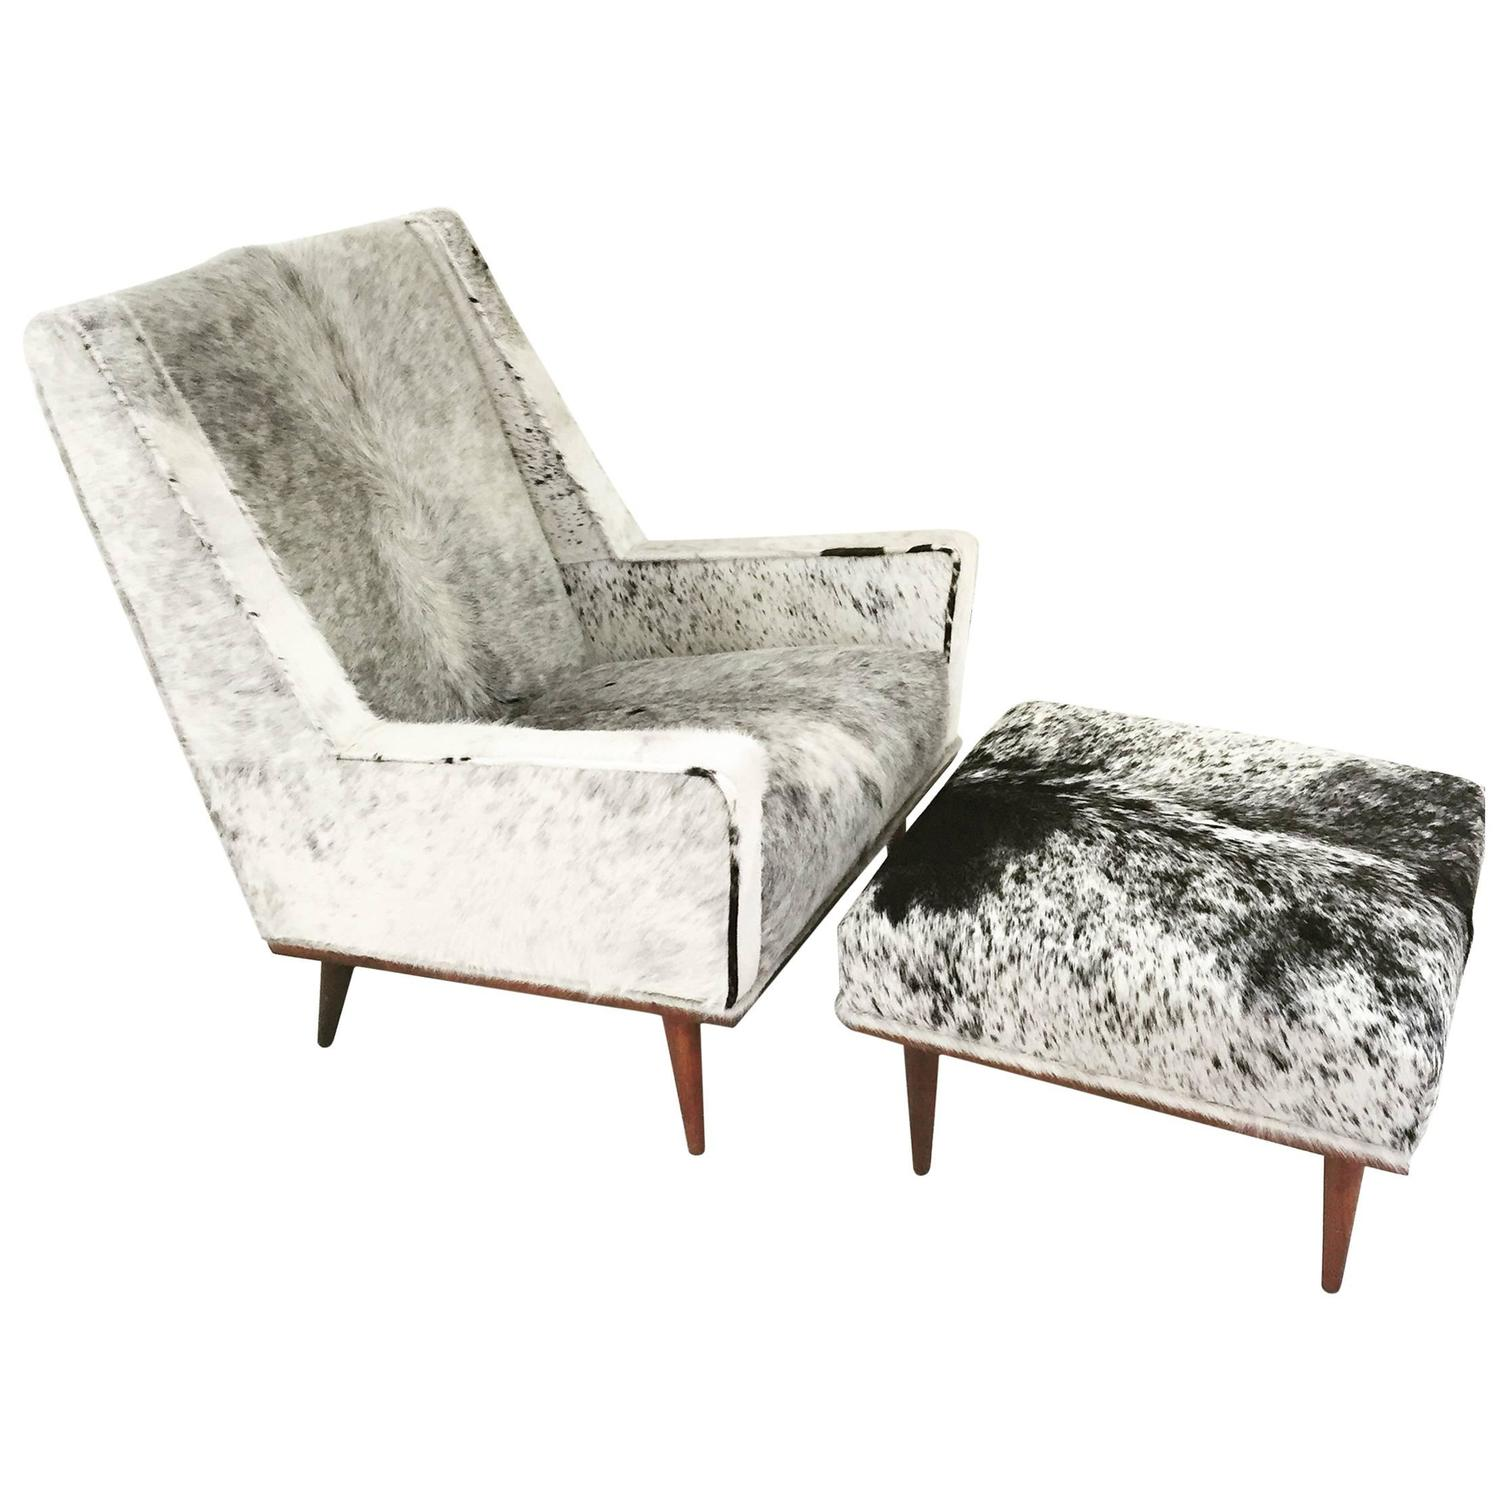 cowhide chairs modern folding camping table and milo baughman style chair ottoman in brazilian